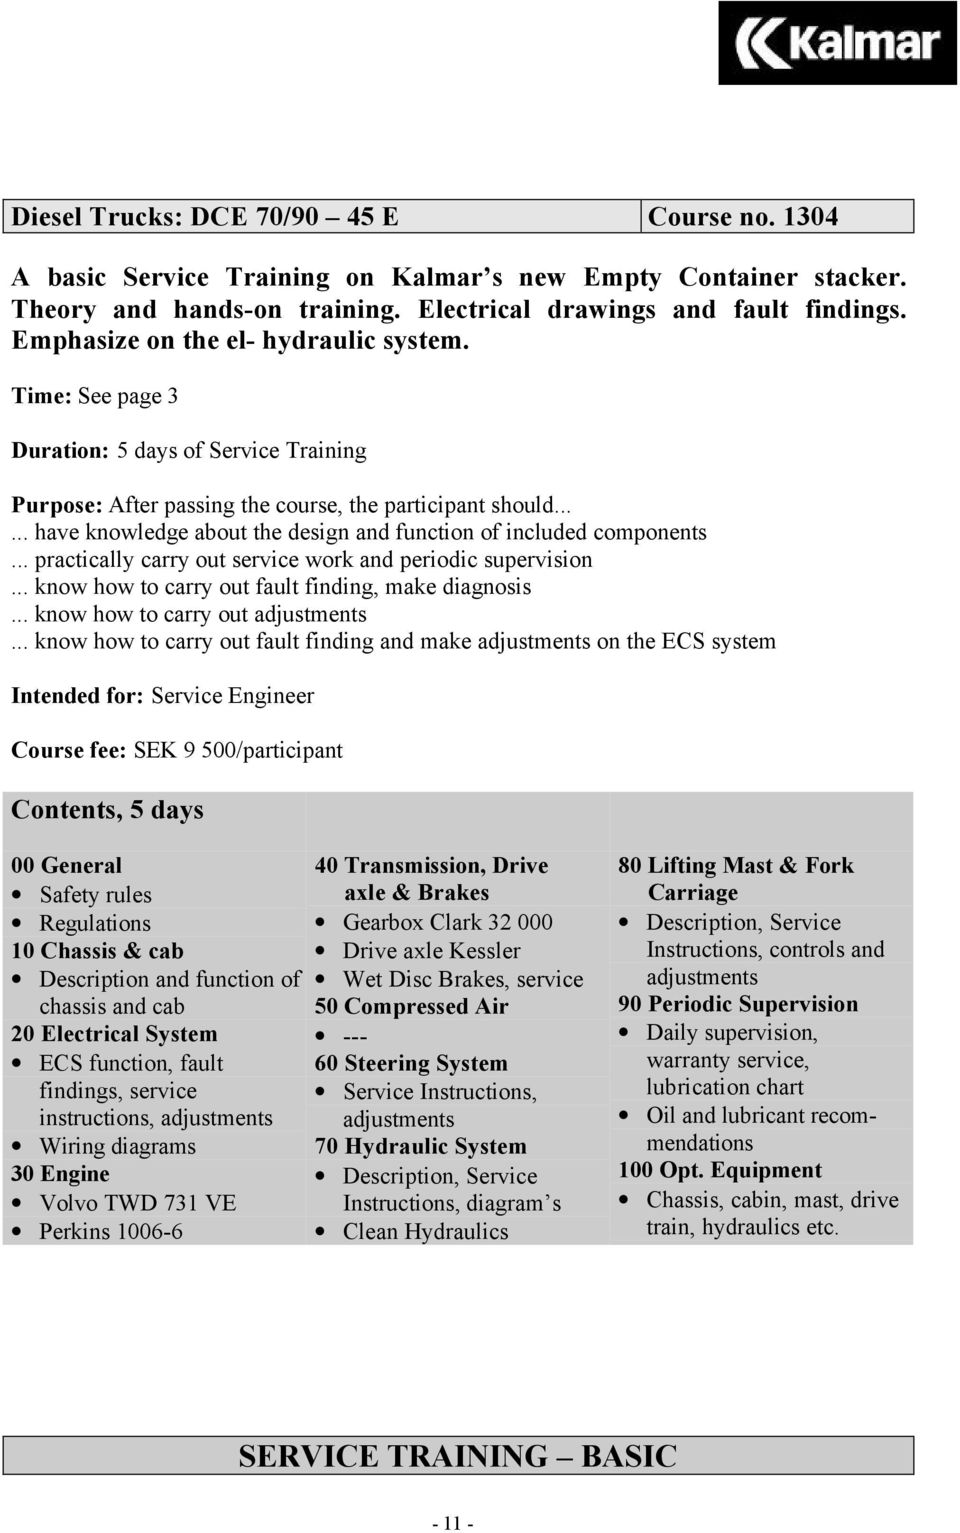 Kalmar Training Centre Service Operator Volvo Power Steering Pump Wiring Diagram Know How To Carry Out Fault Finding And Make On The Ecs System Course